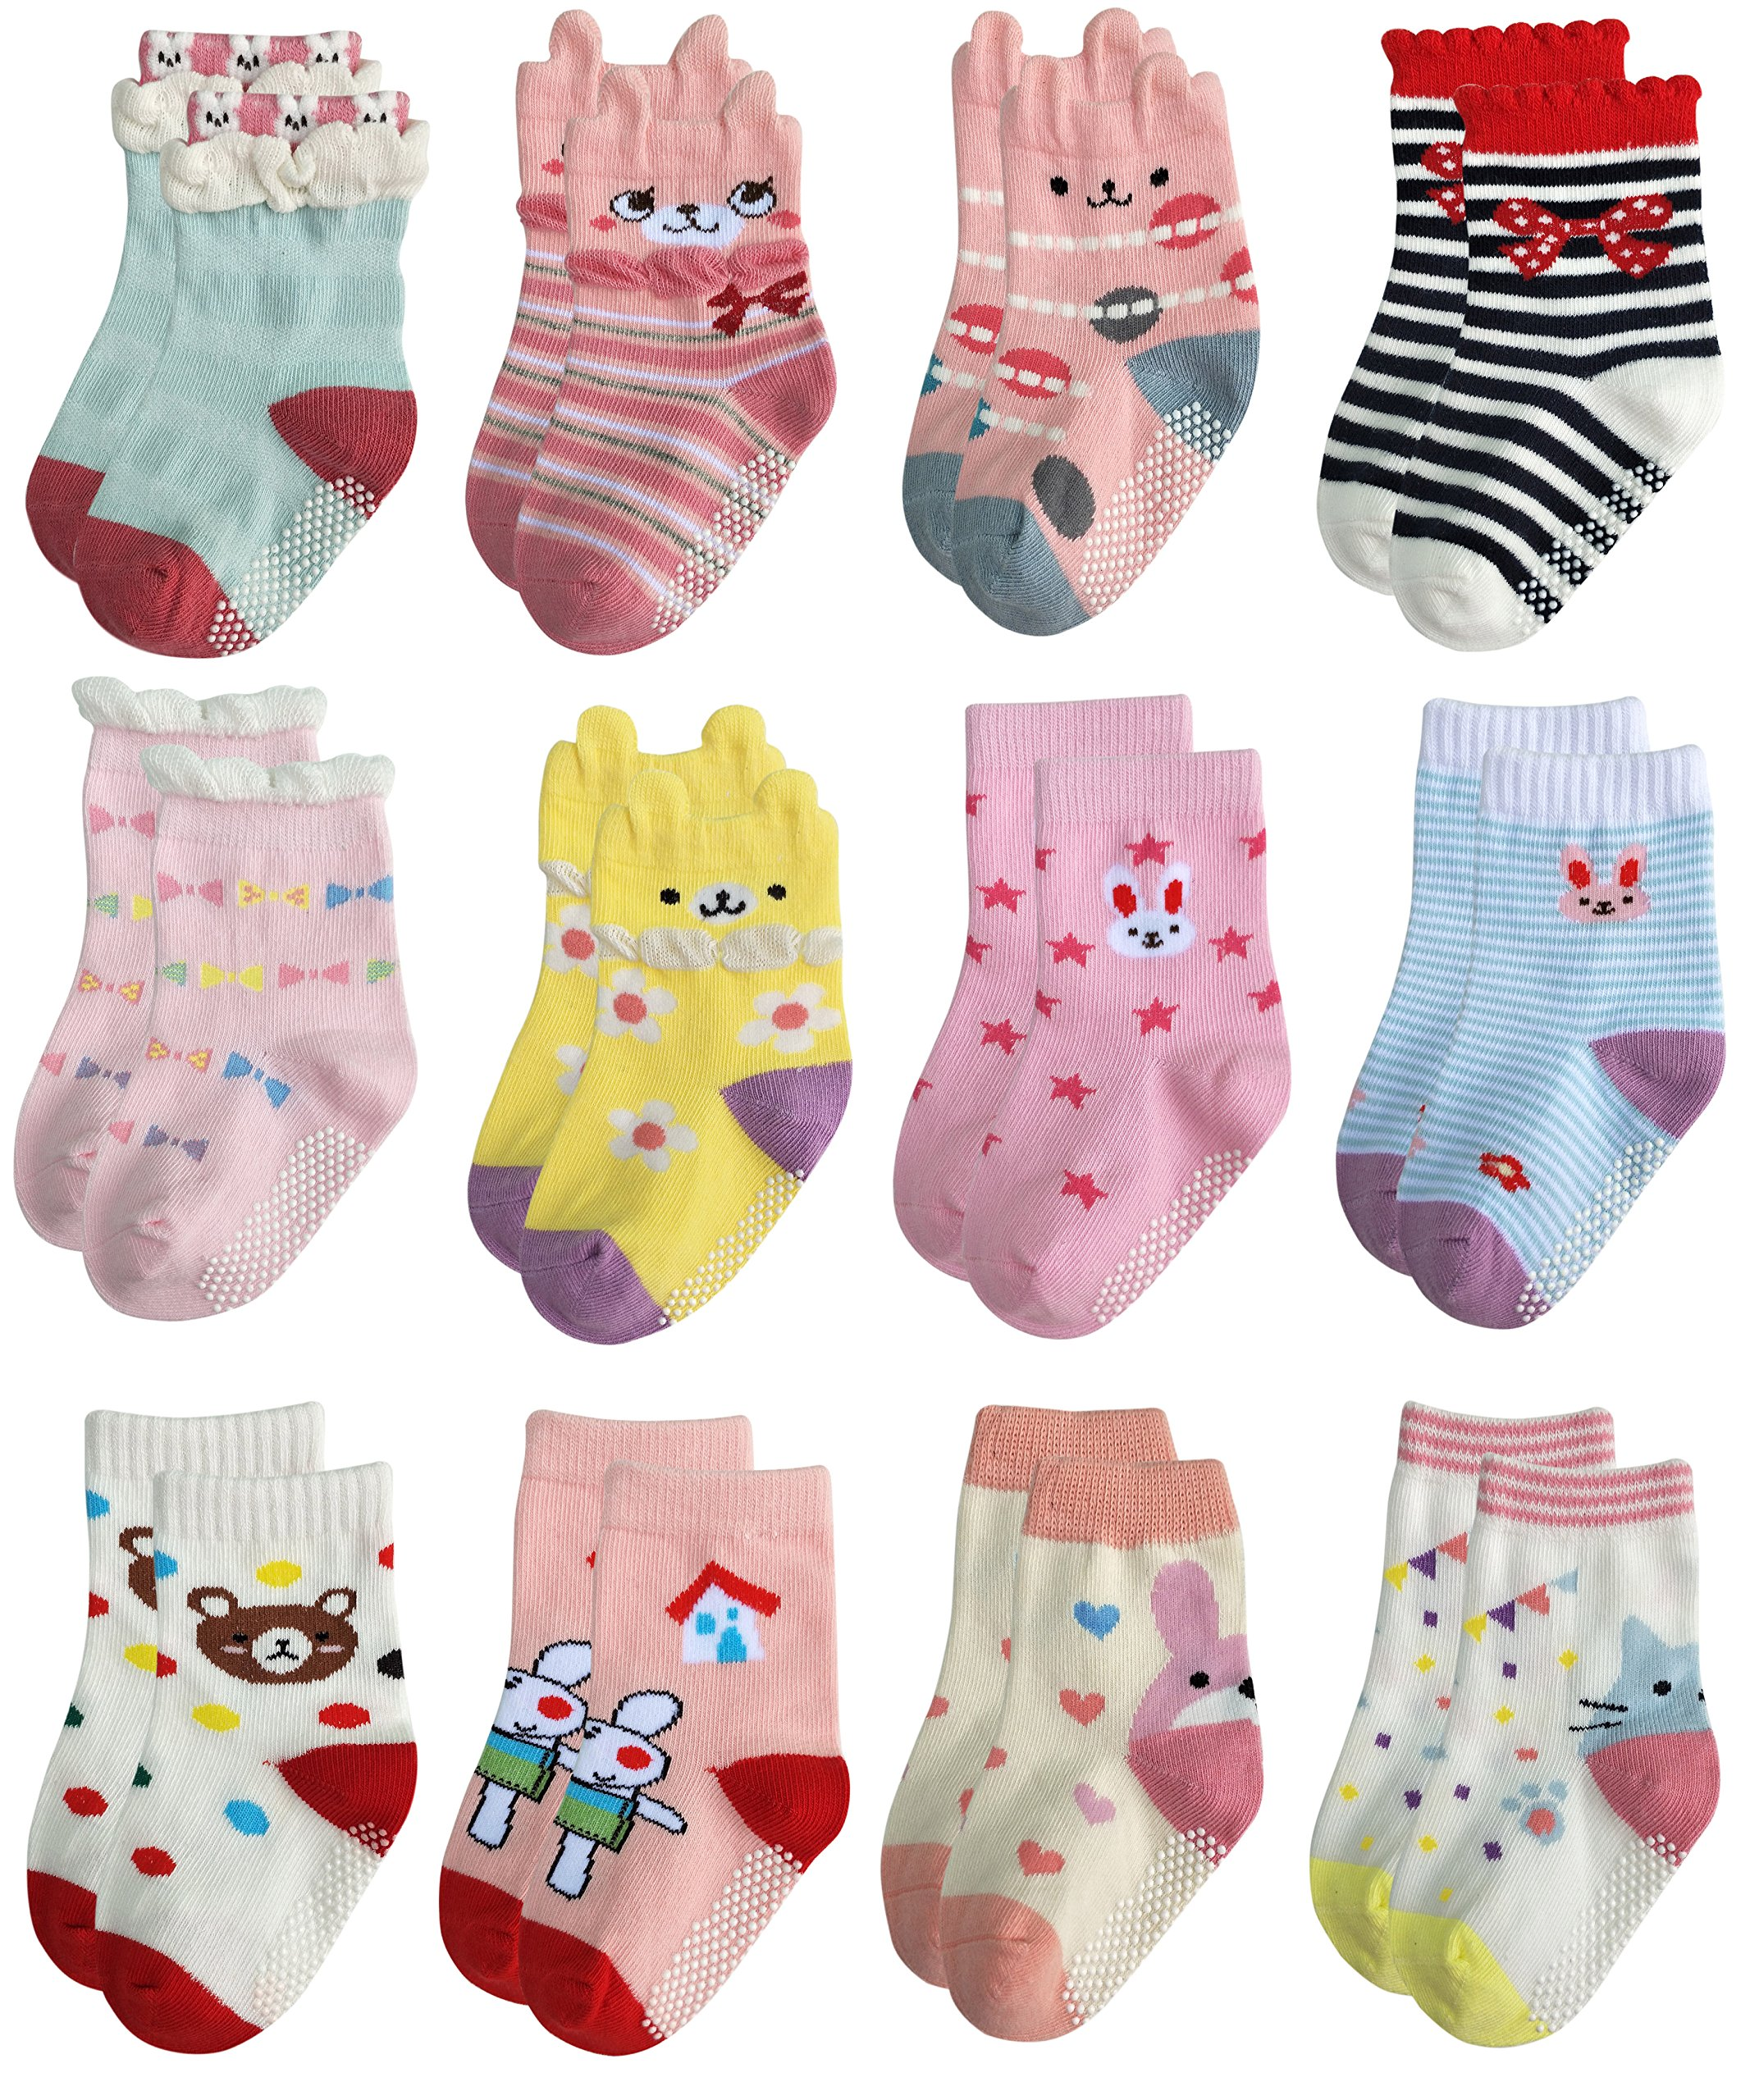 879f1ab7f RATIVE RG-82021 Non Skid Cotton Crew Socks With Grips For Baby Toddler Girls